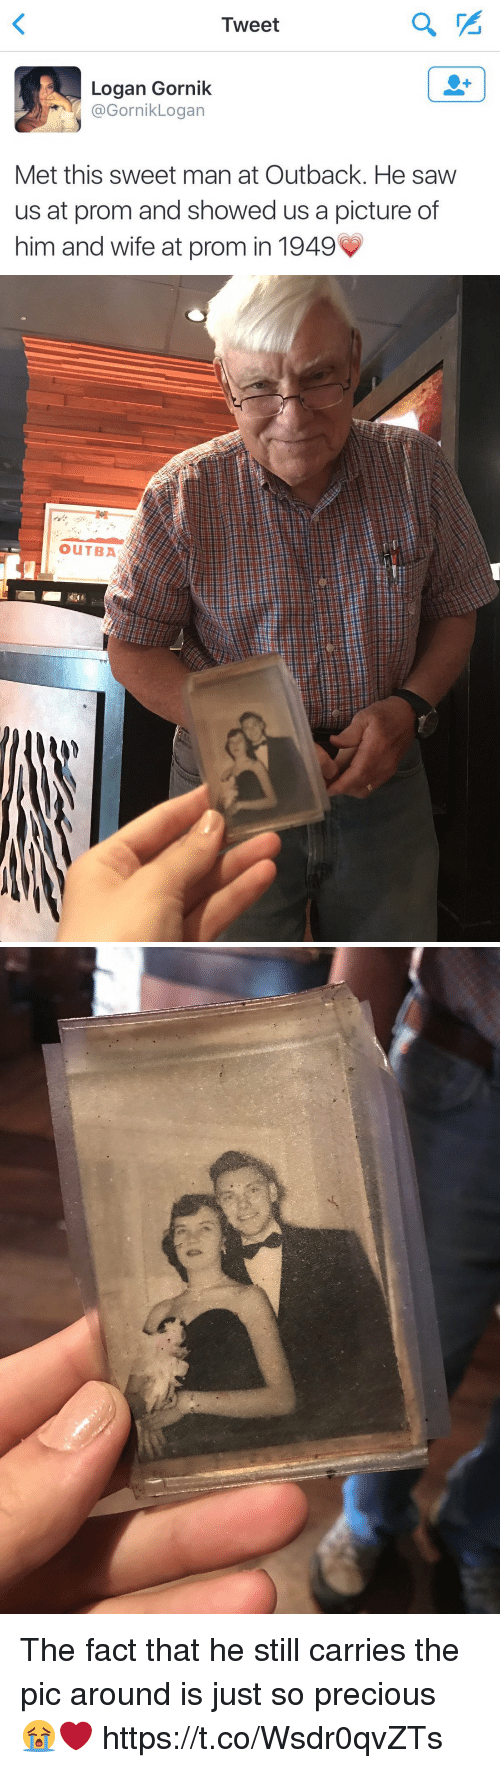 Precious, Saw, and Outback: Tweet  Logan Gornik  @Gornik Logan  Met this sweet man at Outback. He saw  us at prom and showed us a picture of  him and wife at prom in 1949   OuTBA The fact that he still carries the pic around is just so precious 😭❤️ https://t.co/Wsdr0qvZTs